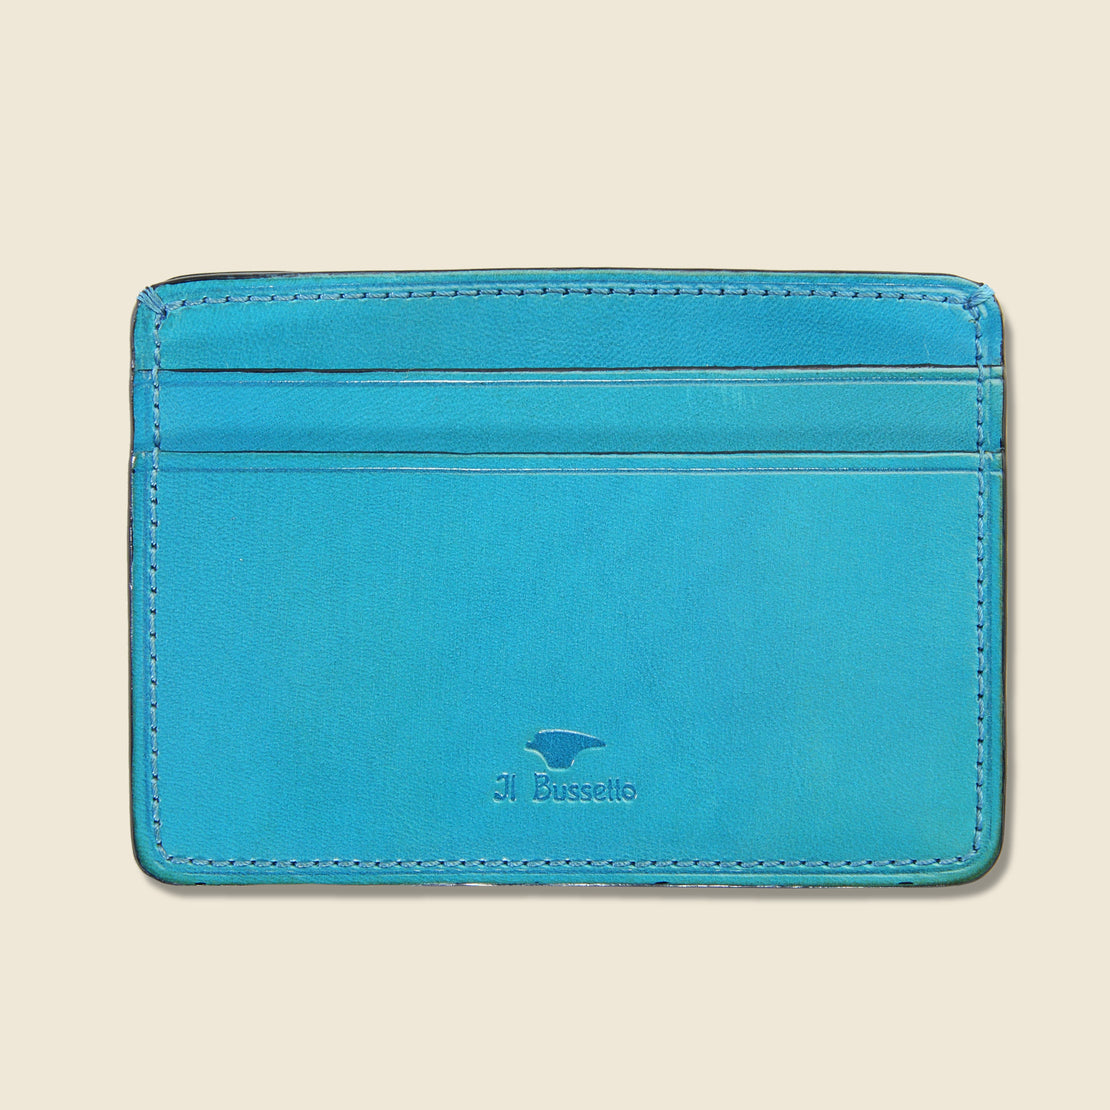 Il Bussetto Credit Card Case - Cadet Blue